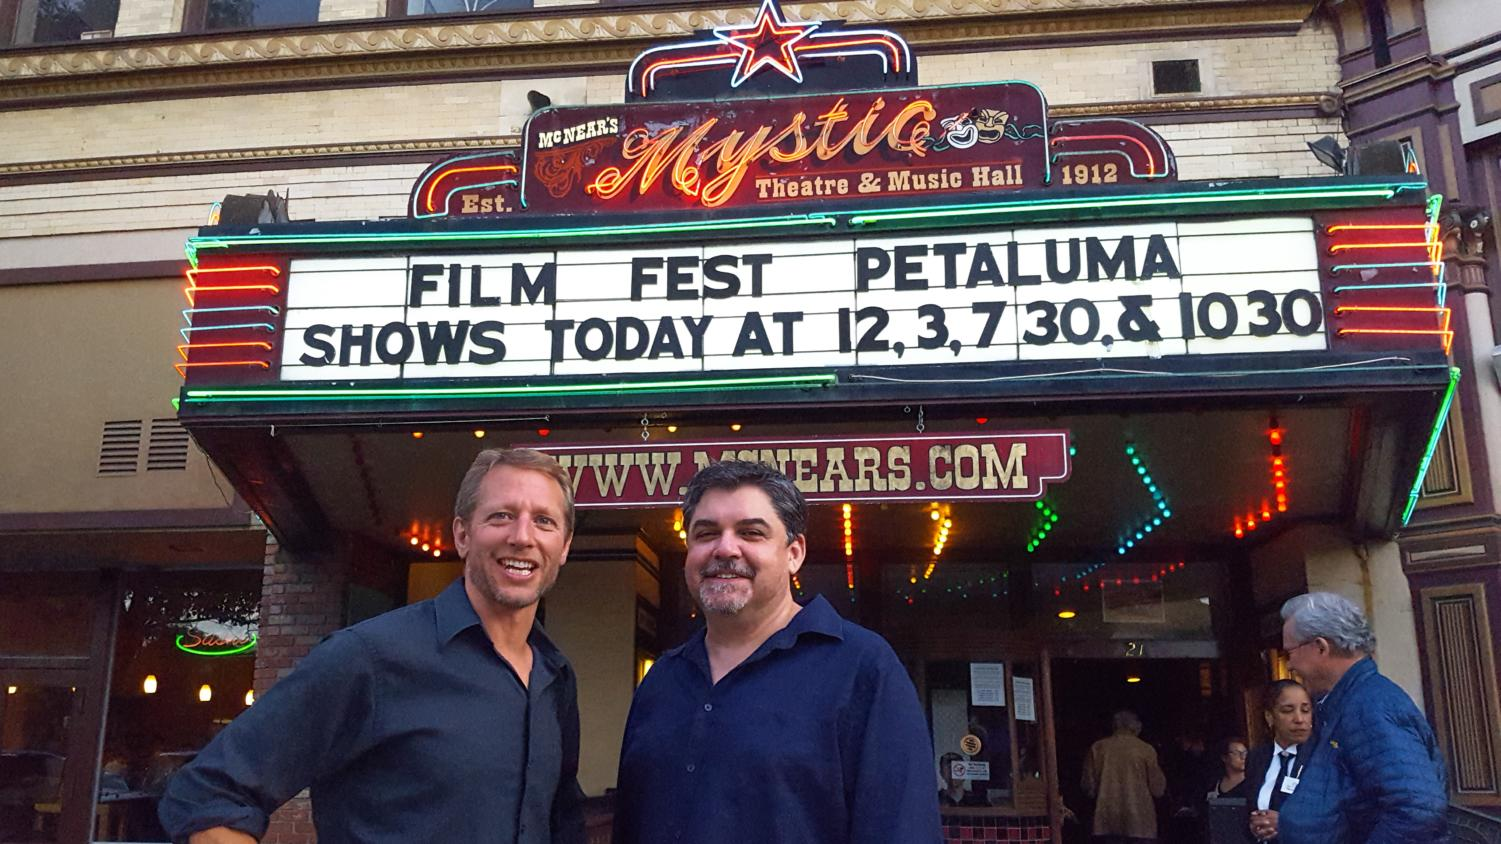 SRJC Media Instructor and Festival Director Mike Traina and fellow Instructor Brian Antonson pose in front of the historic Mystic Theater, the site of this year's Petaluma Film Festival.